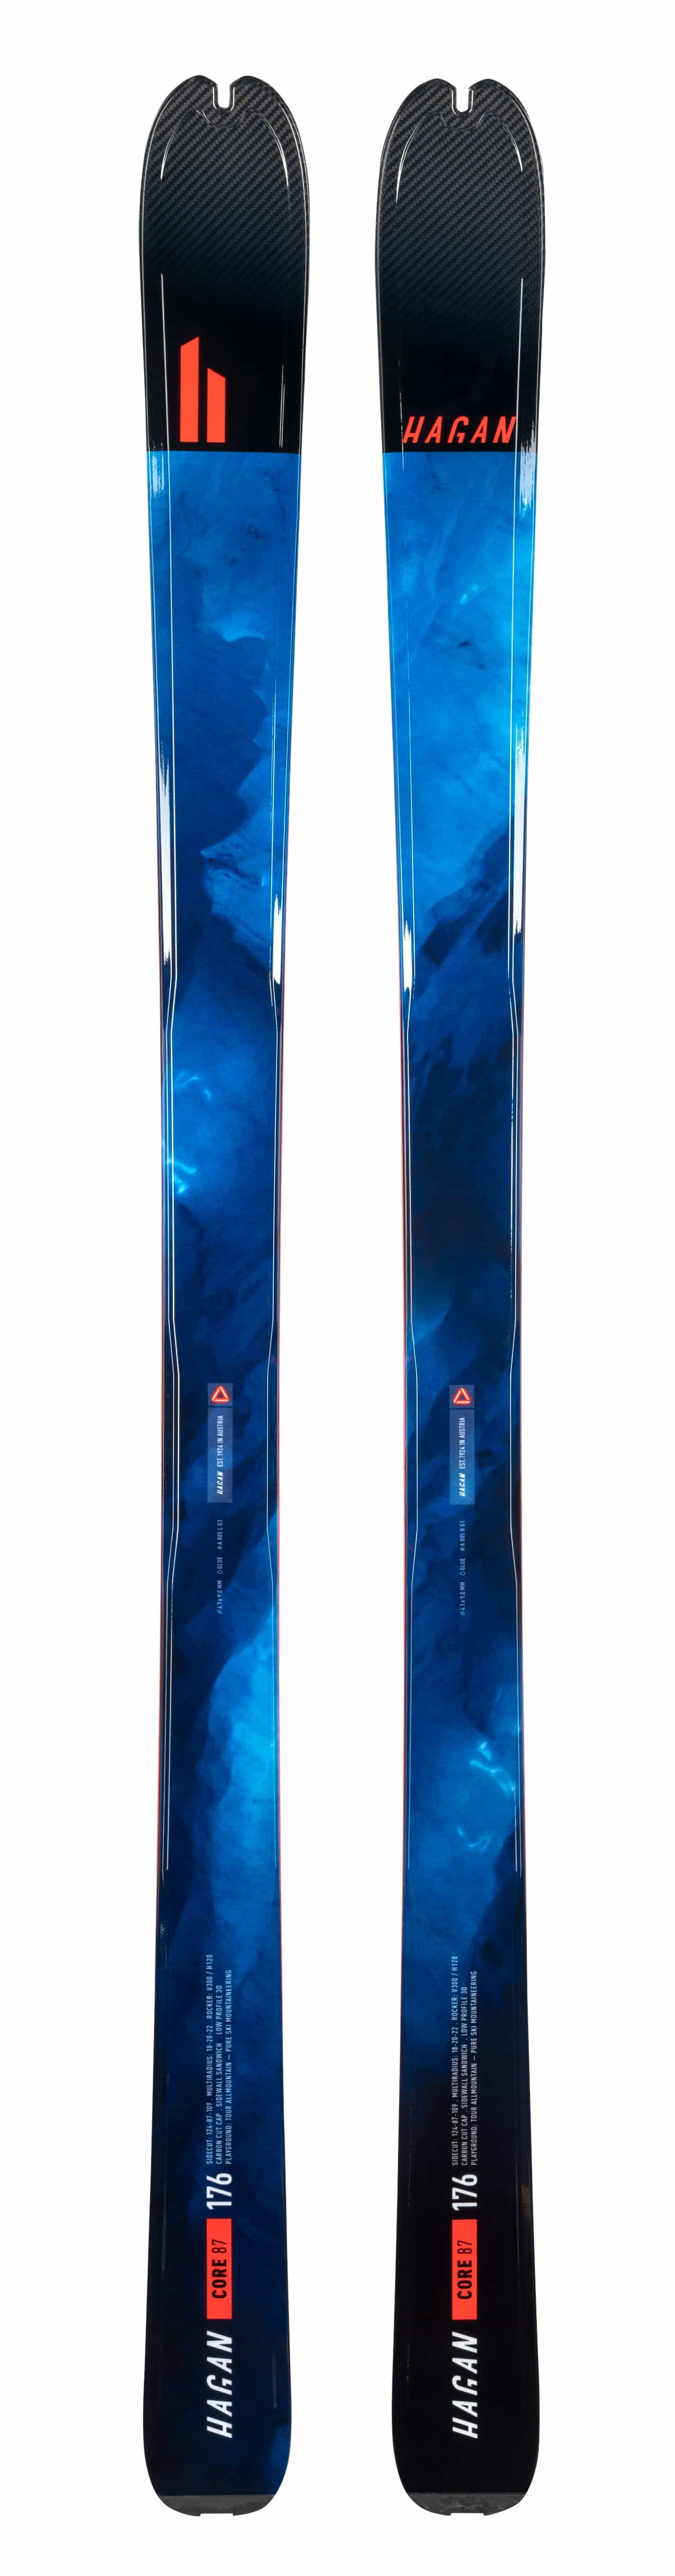 Core 87 - Save $300 with code, Skis - Hagan Ski Mountaineering Alpine Ski Touring Backcountry Gear